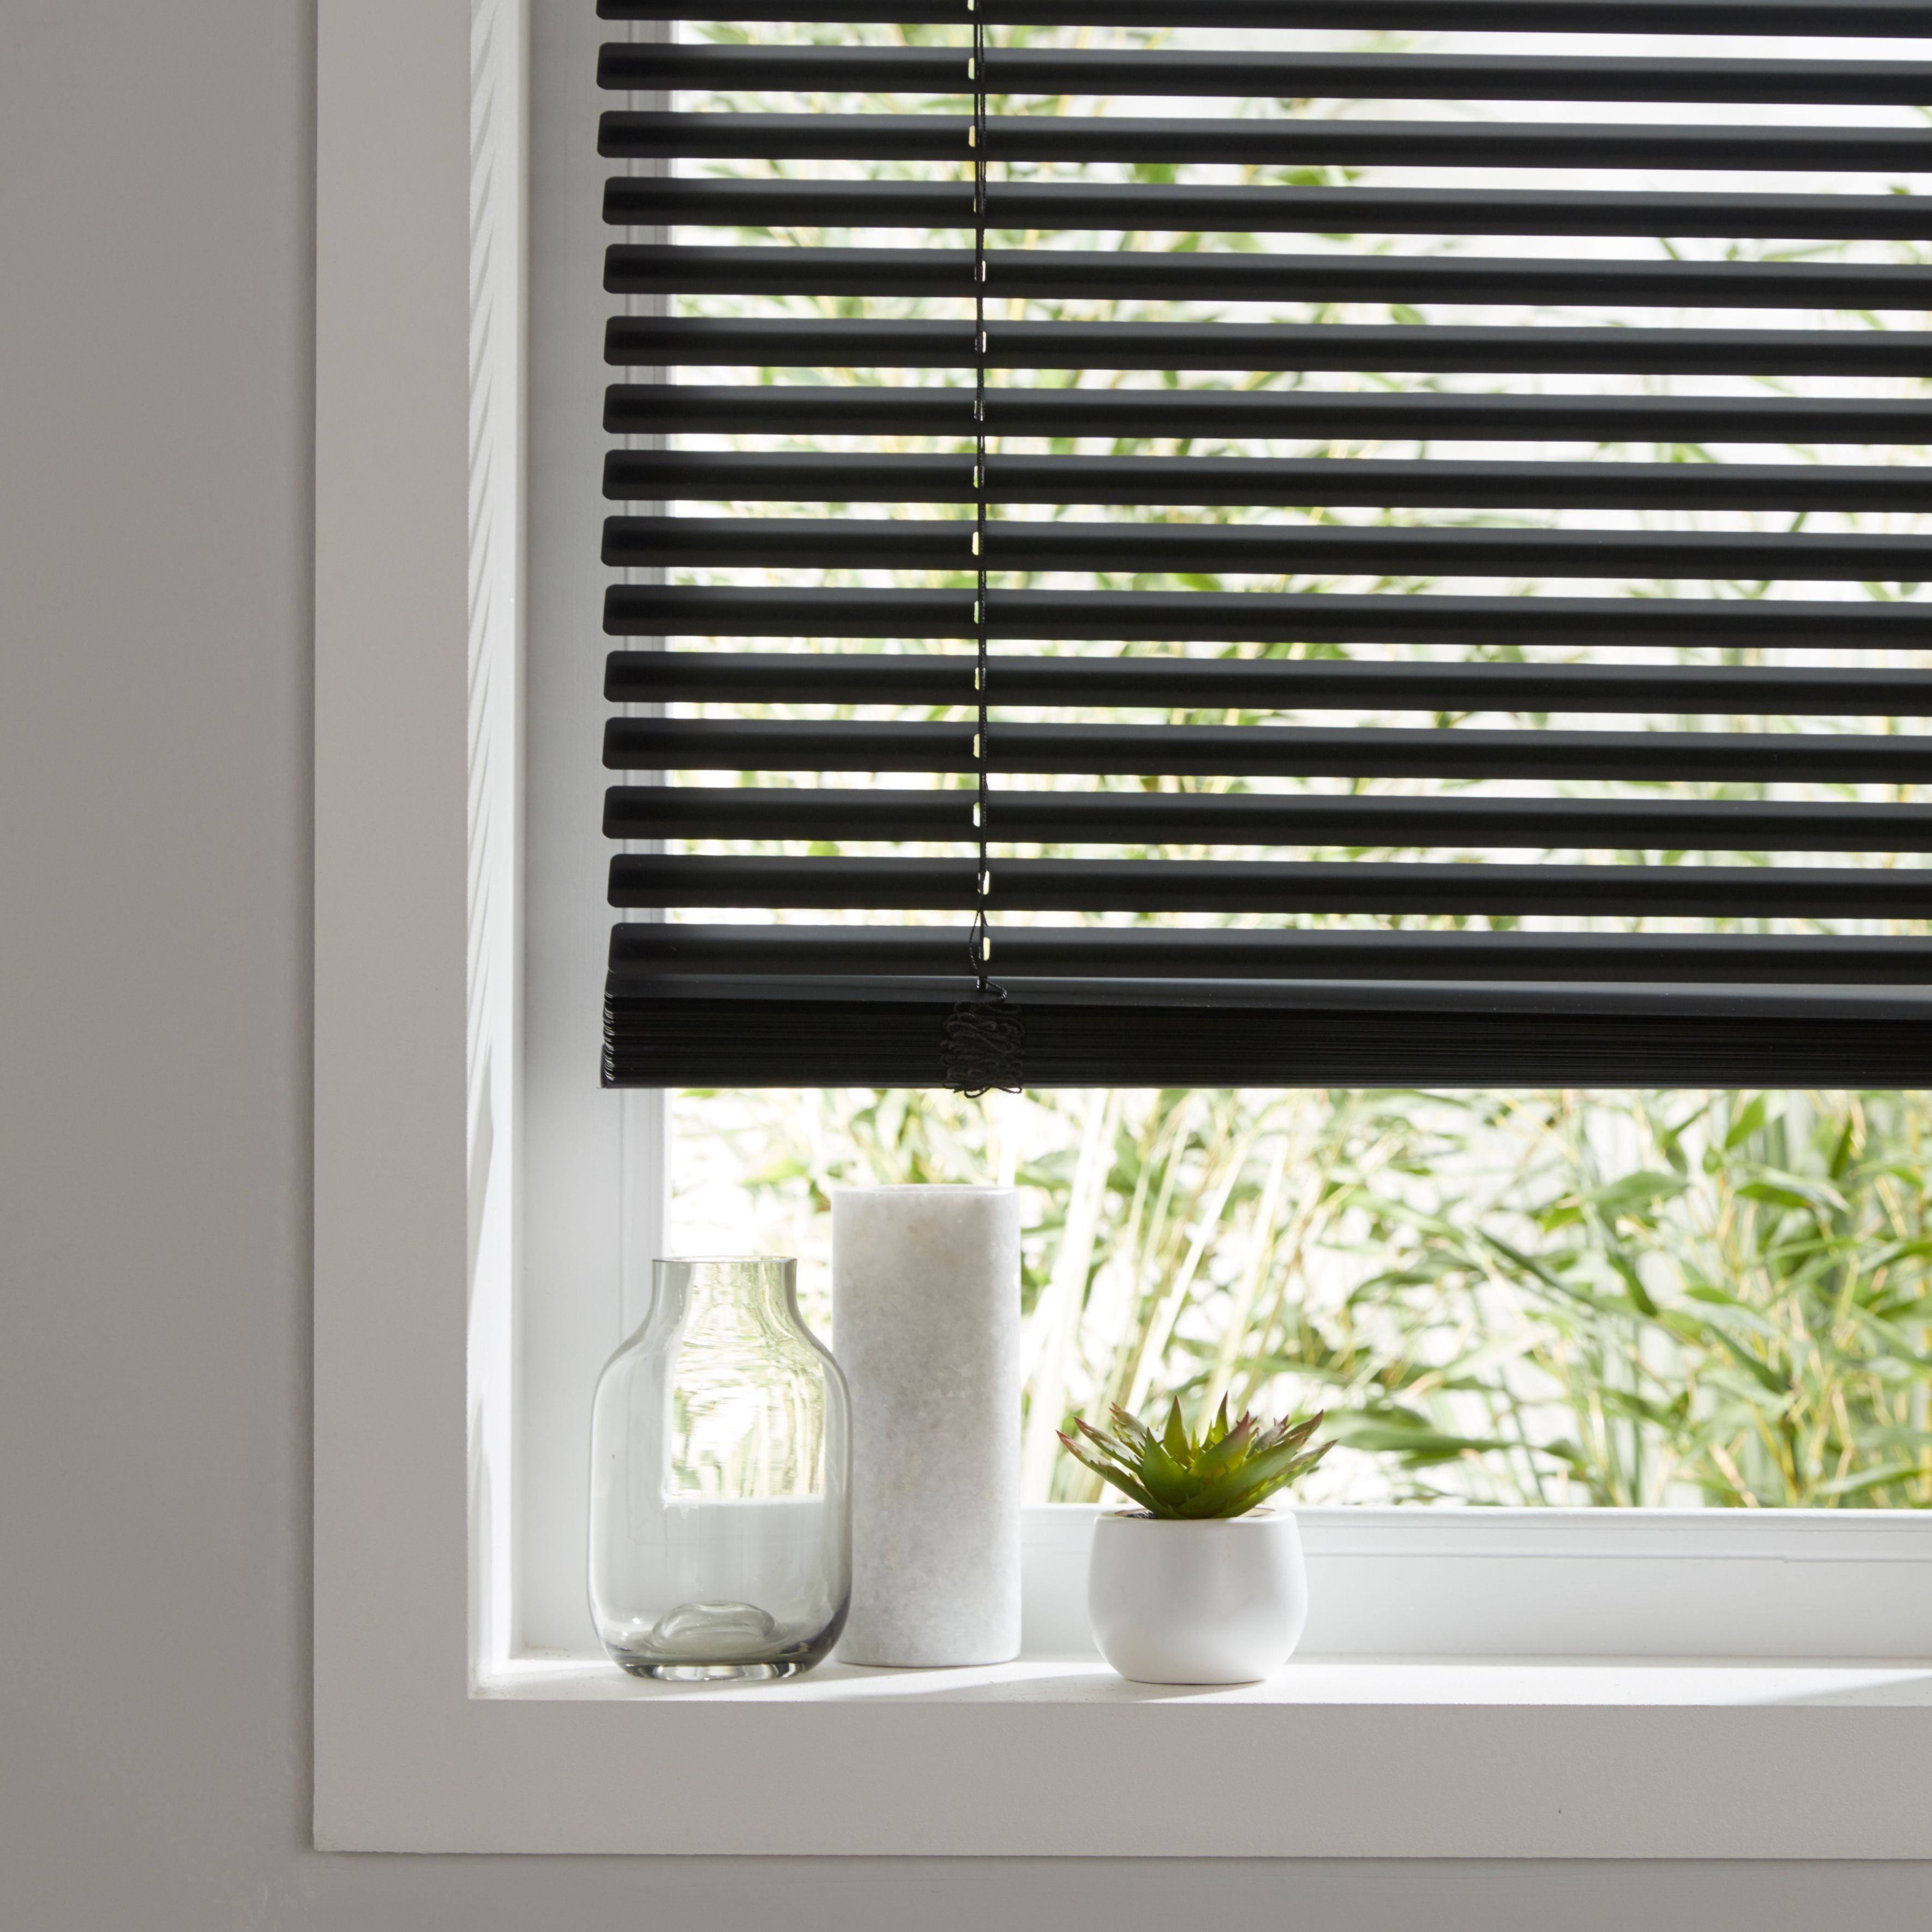 your pin or s disinfected times even a cleaning recommend year mini cleaner the blind when last time how to wood we dusted faux them you clean household grimiest blinds